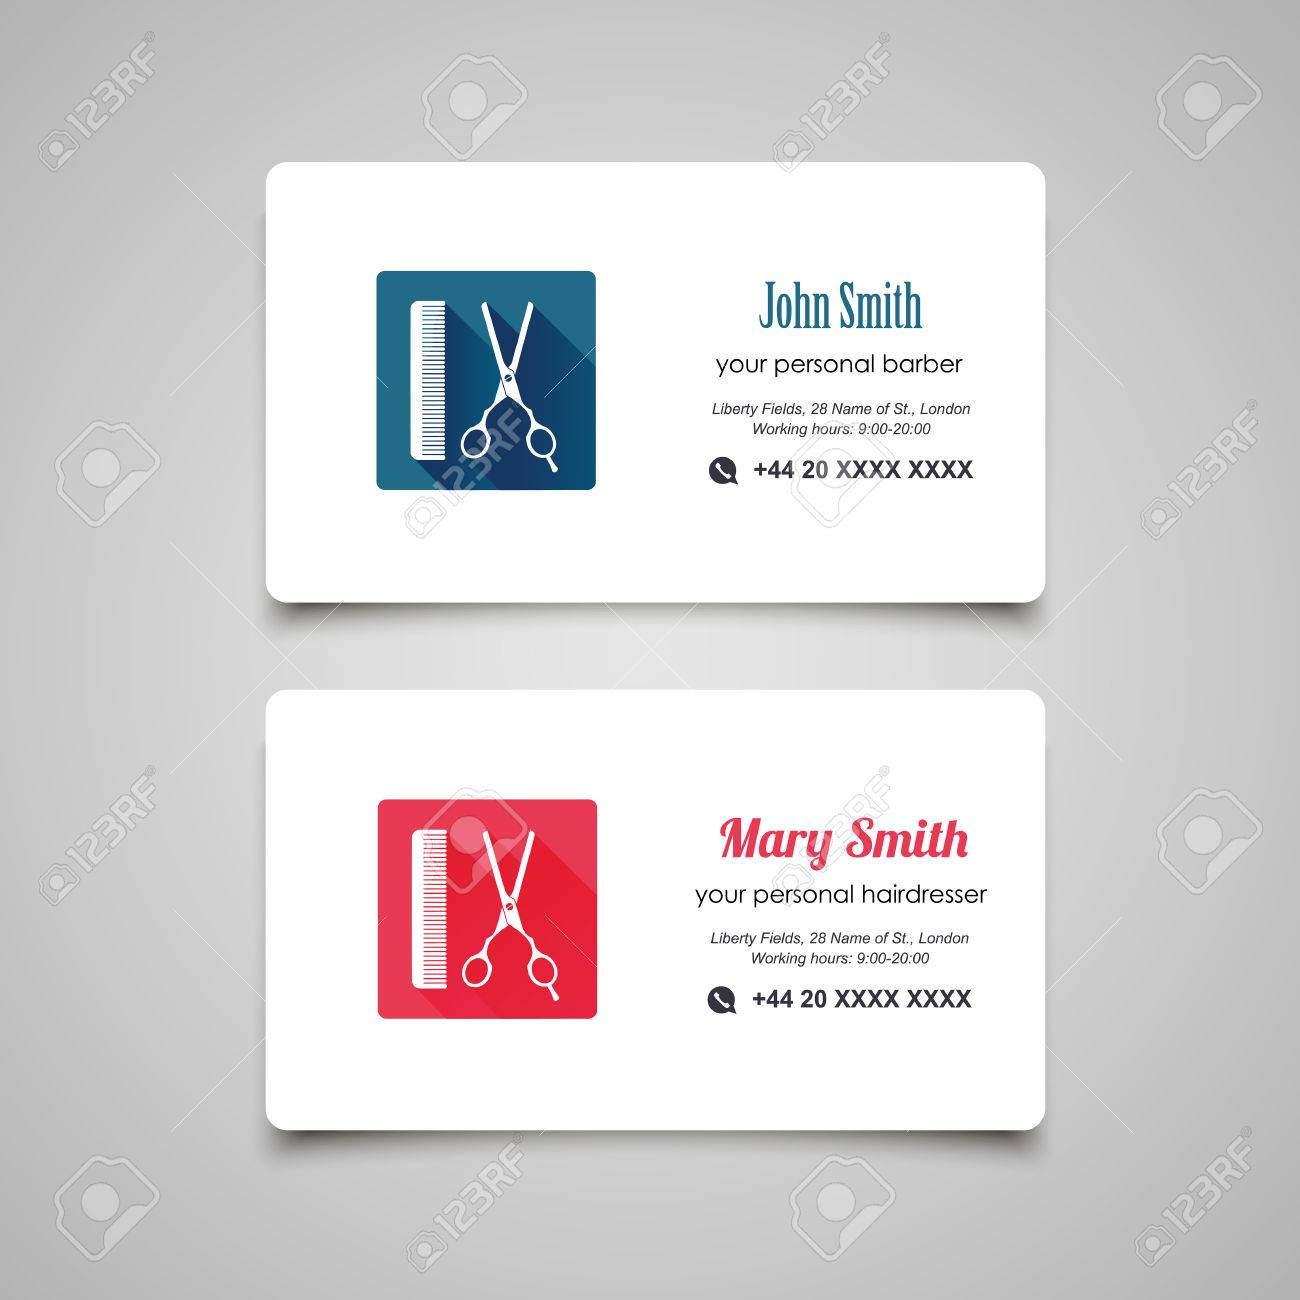 Hair Salon Barber Shop Business Card Design Template Royalty Free ...